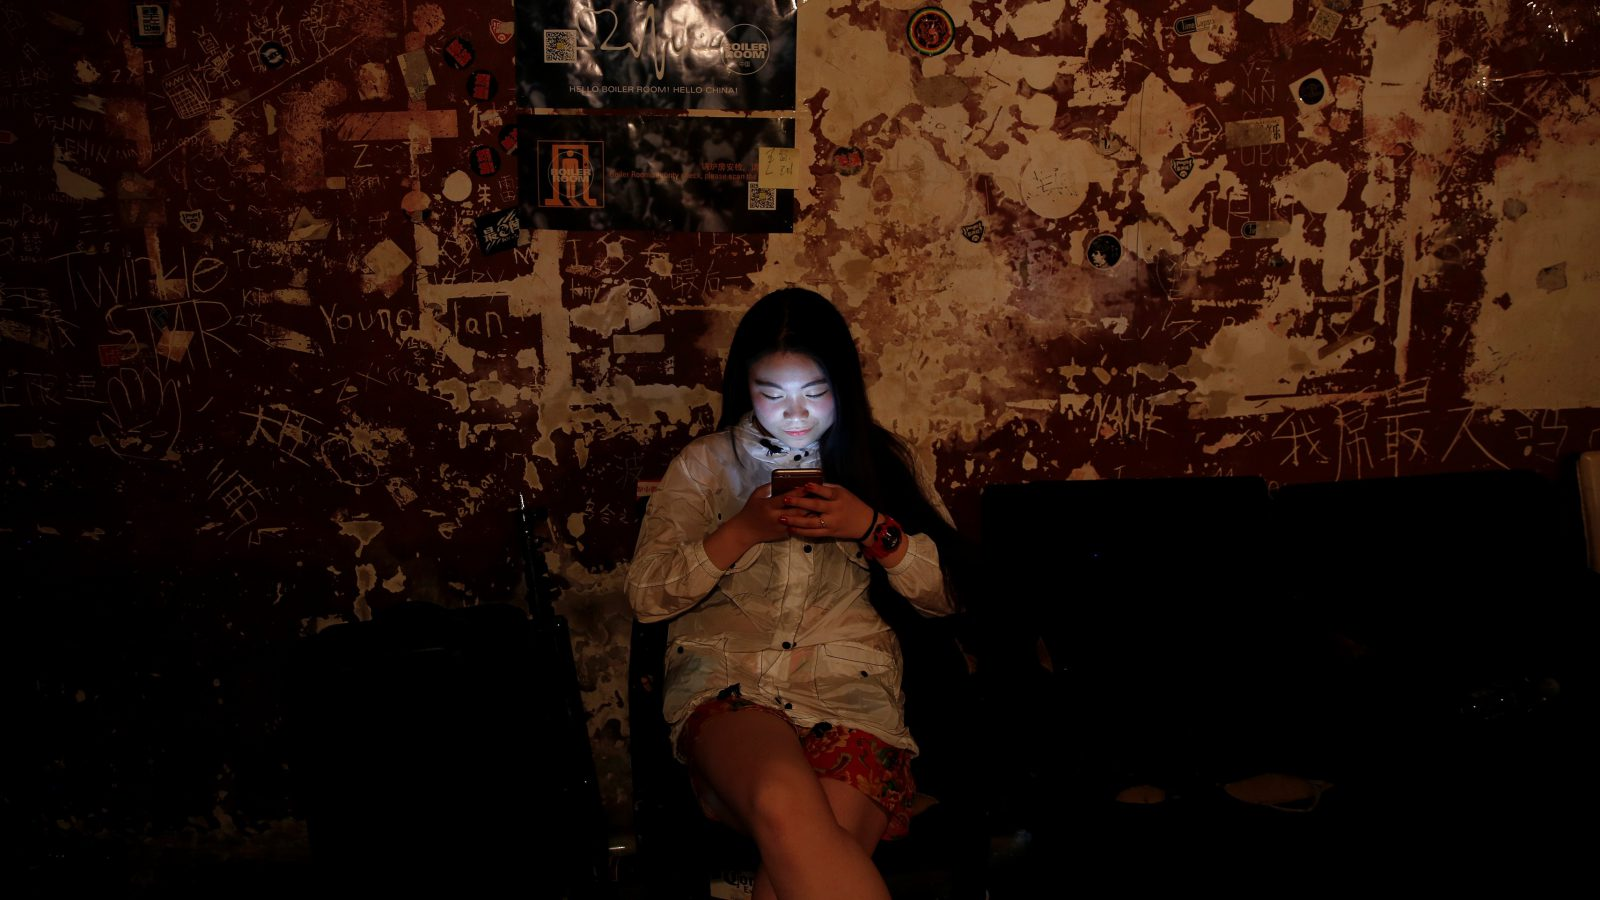 """A girl uses her phone at Mao Live House during its last public concert night in central Beijing, China April 24, 2016. Mao Live House, a prominent live rock music venue in Beijing, shut its doors on the weekend, the latest closure to hit China's rock music scene. Owner Li Chi said the club, popular among fans of punk, metal and alternative rock since it opened nine years ago, was forced to close due to tighter rules on live performances. REUTERS/Damir Sagolj      SEARCH """"MAO LIVE"""" FOR THIS STORY. SEARCH """"THE WIDER IMAGE"""" FOR ALL STORIES  - RTX2CLFE"""